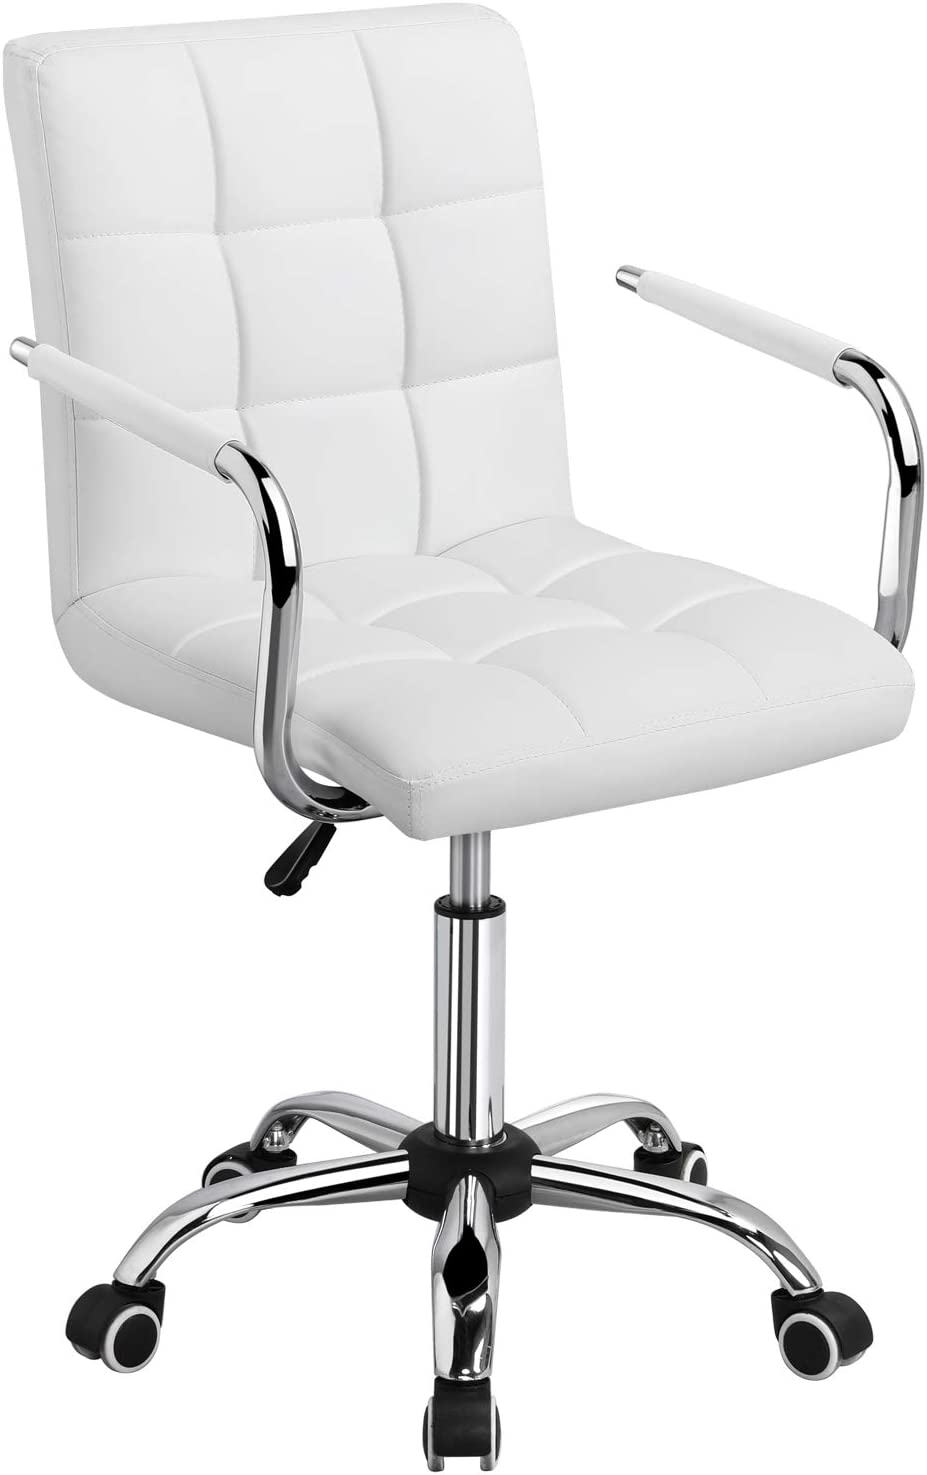 Yaheetech White Desk PU Leather Office Chair